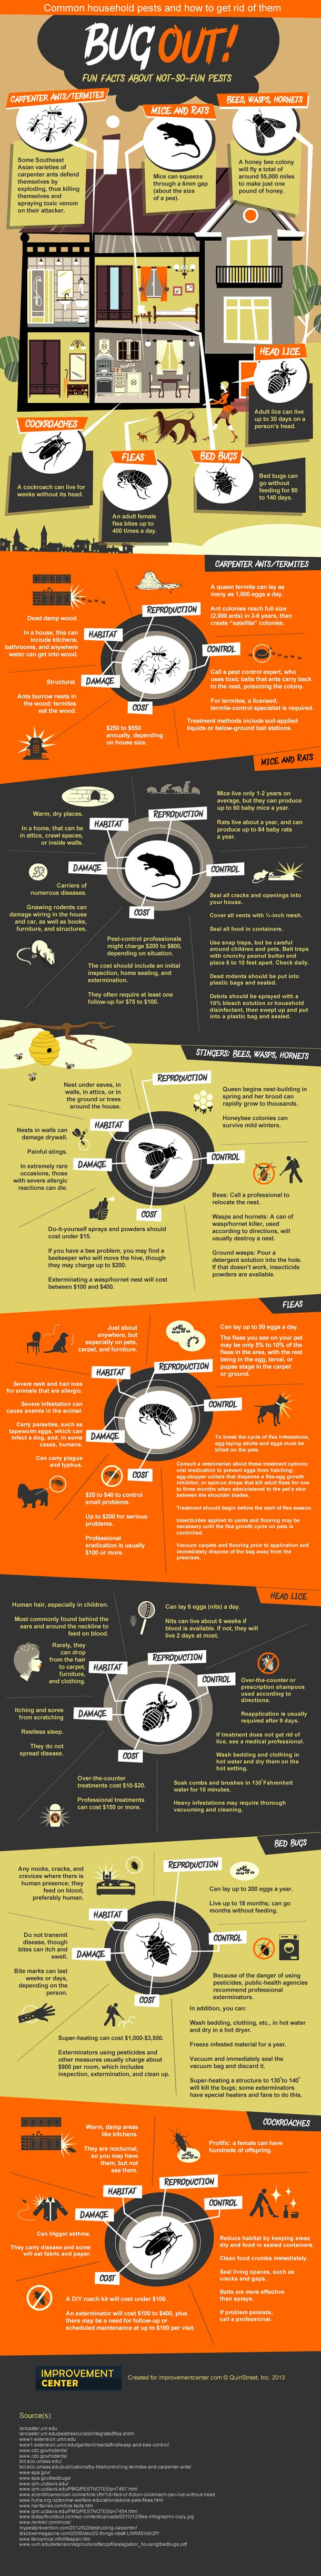 'Fun' facts about 7 common household pests [Infographic] | HellaWella